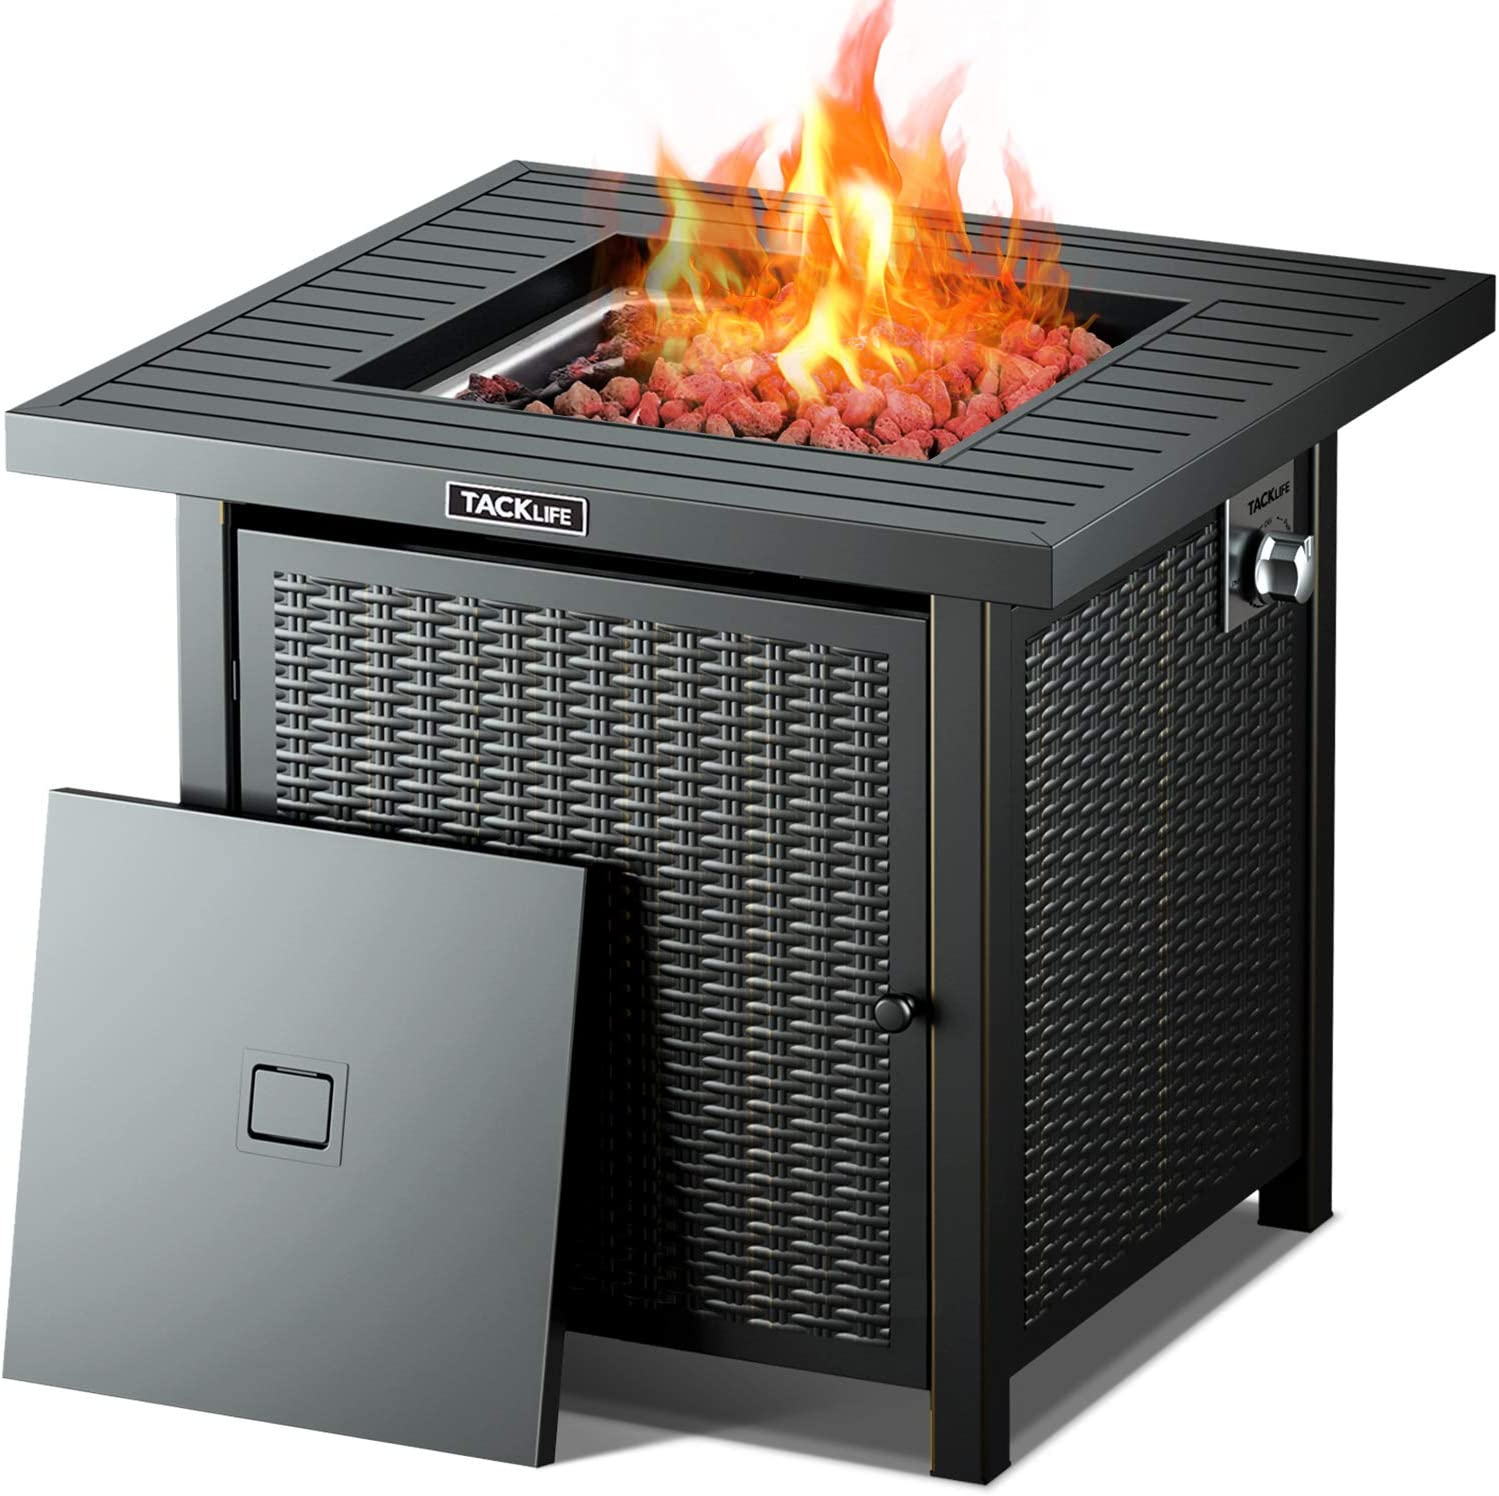 TACKLIFE 28″ 50,000 BTU Outdoor Gas Fire Pit with Lid, Auto-Ignition